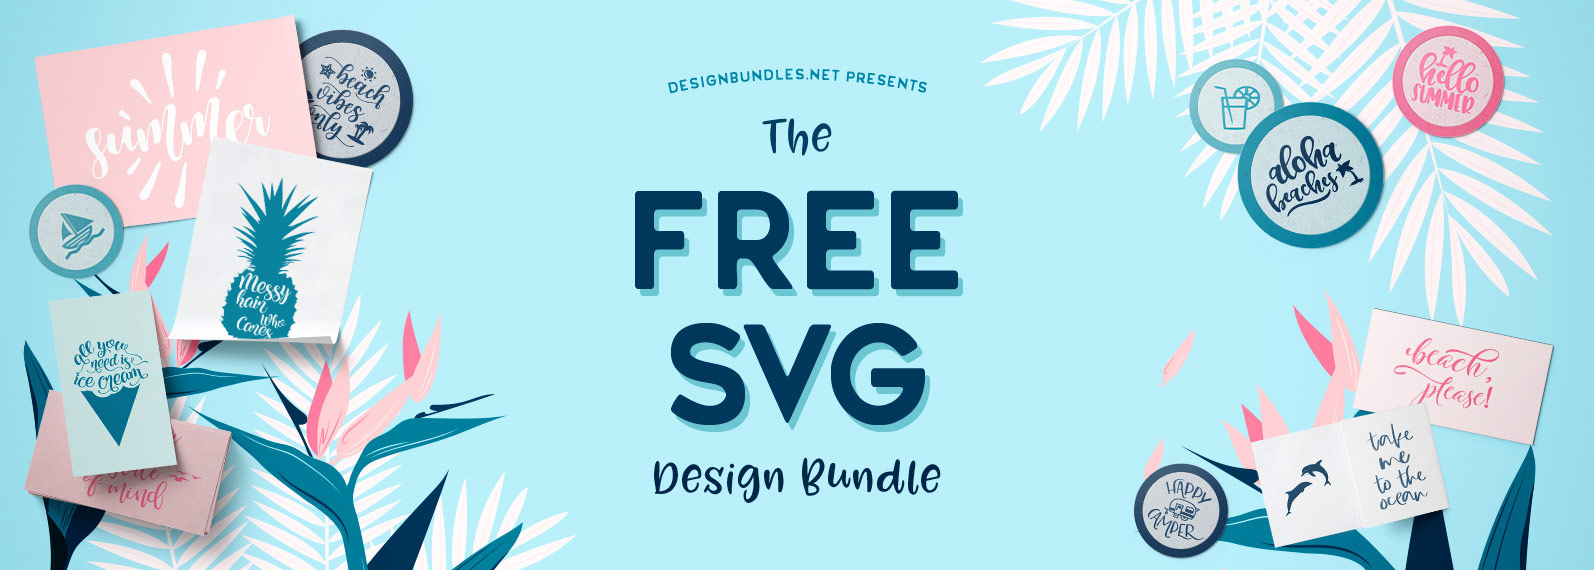 The Free SVG Bundle | Design Bundles